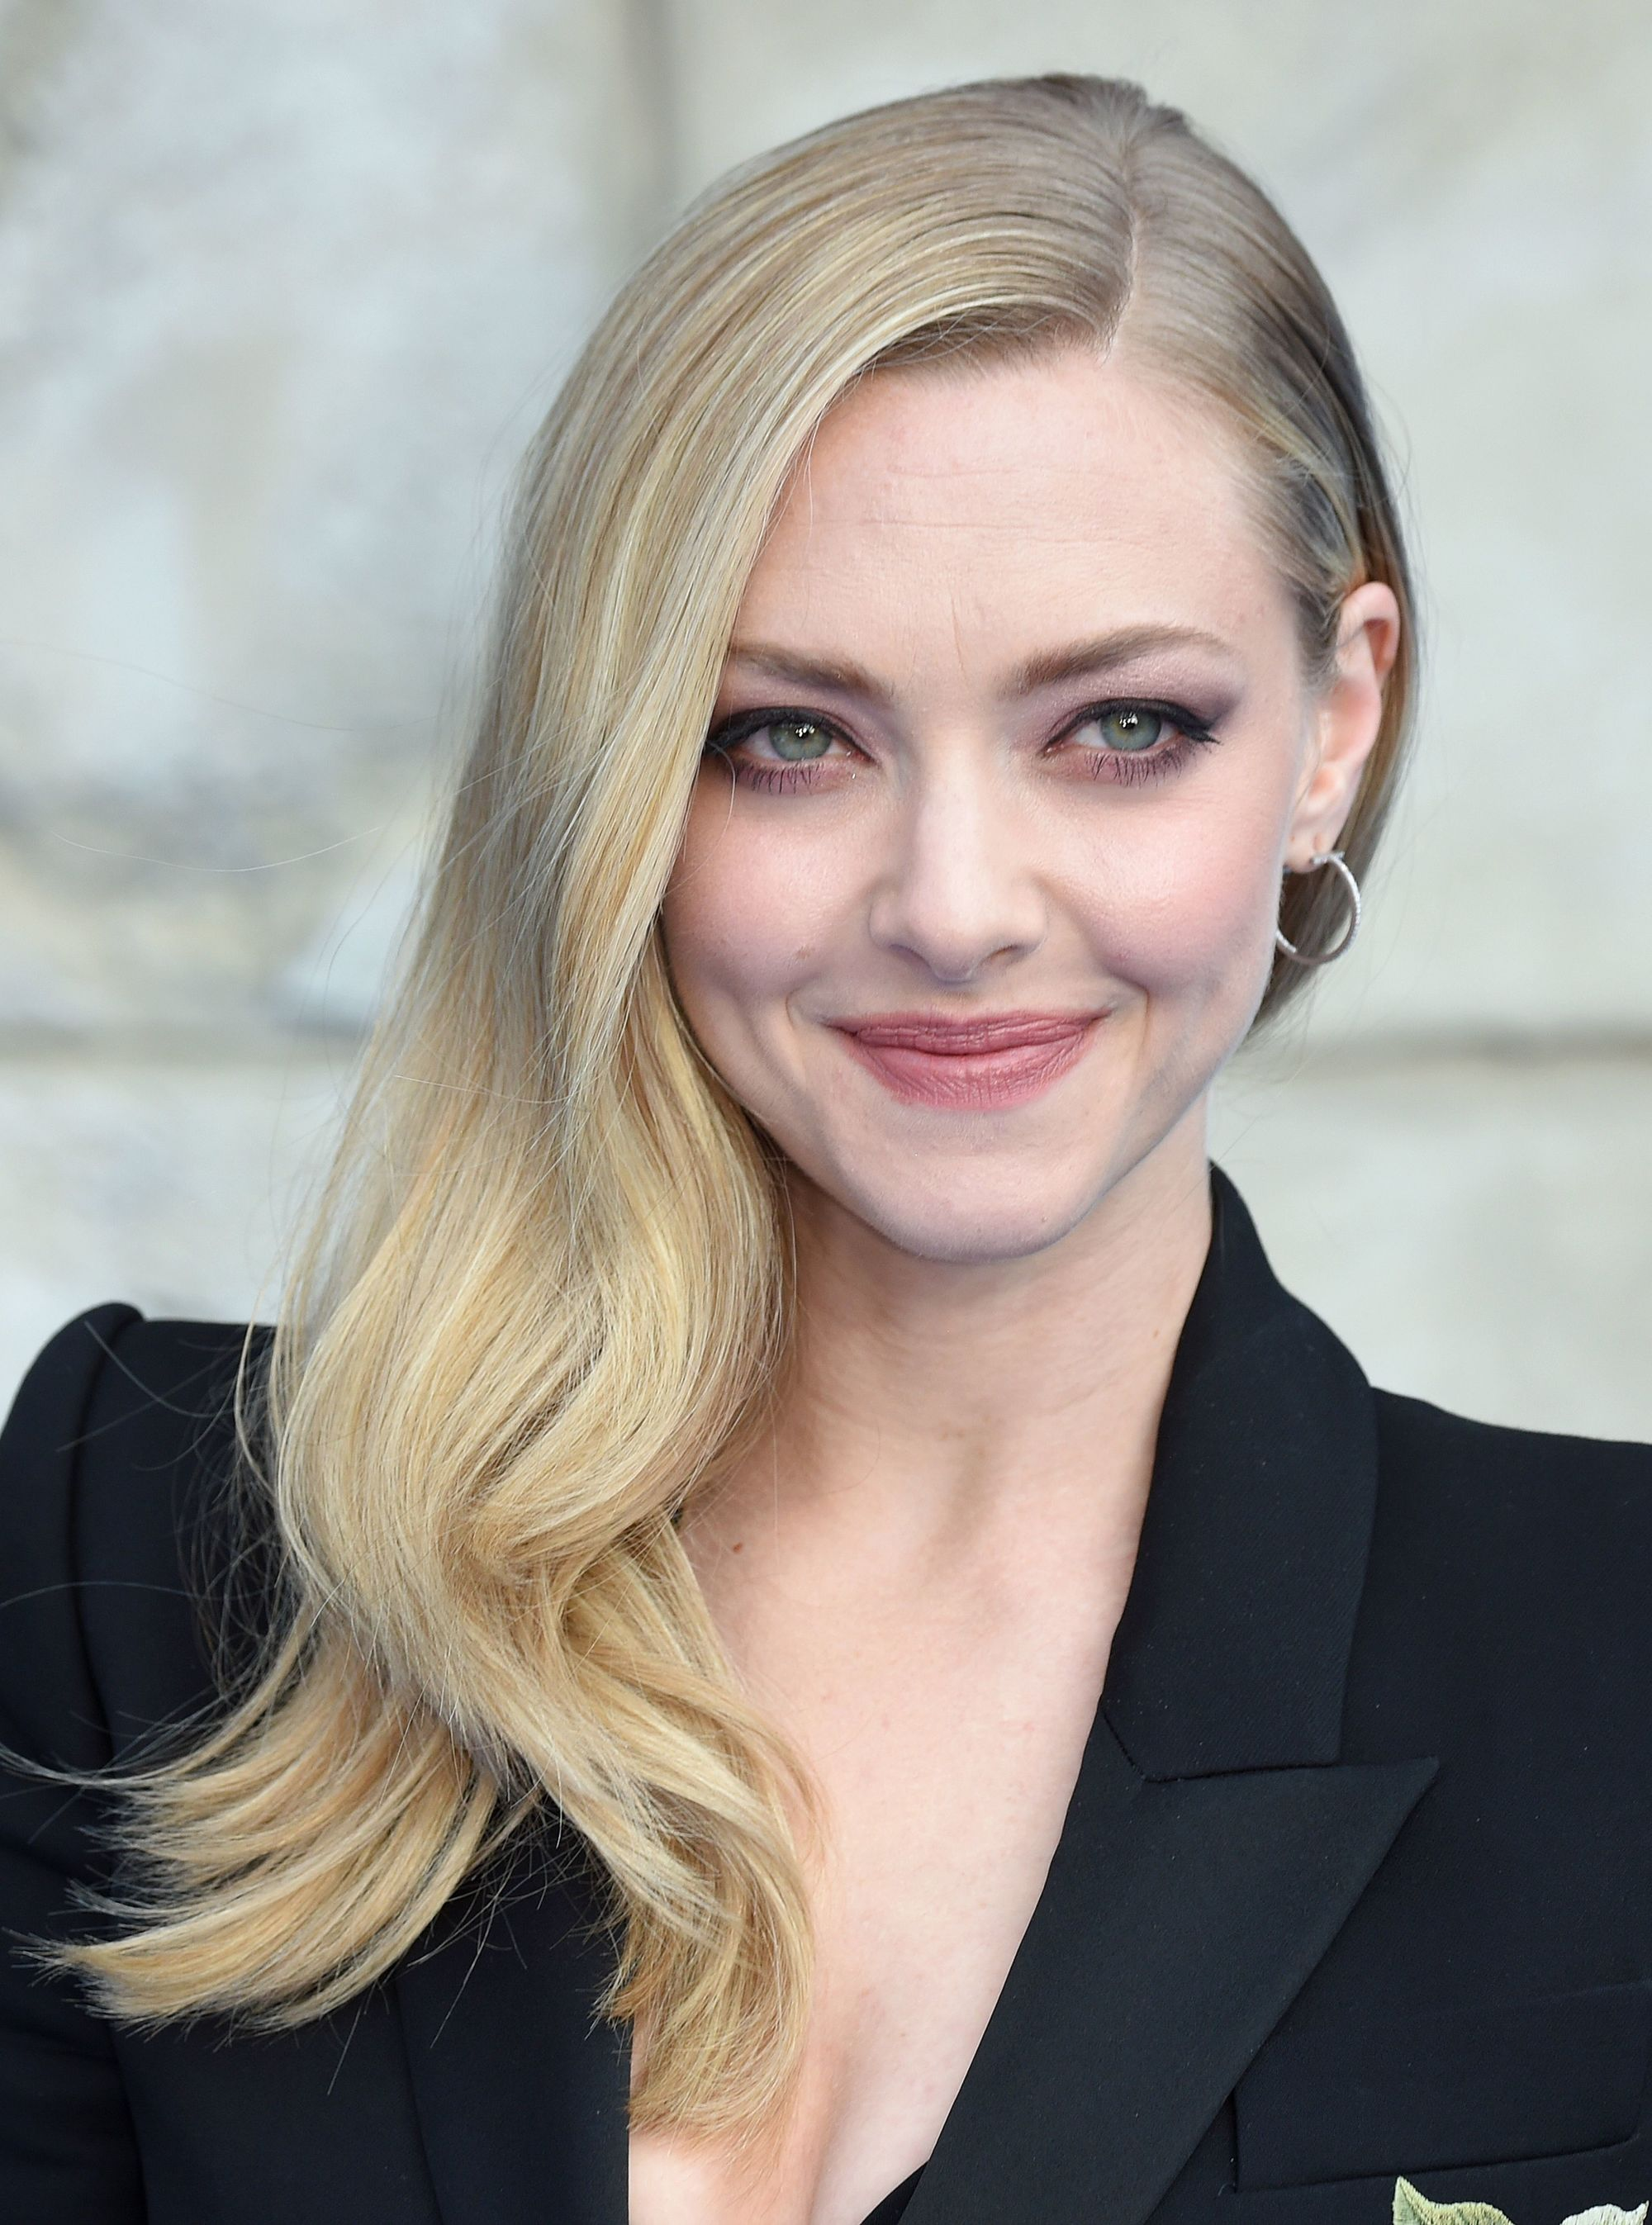 Side hairstyles: Amanda Seyfried with light blonde medium length hair in side-swept Hollywood waves